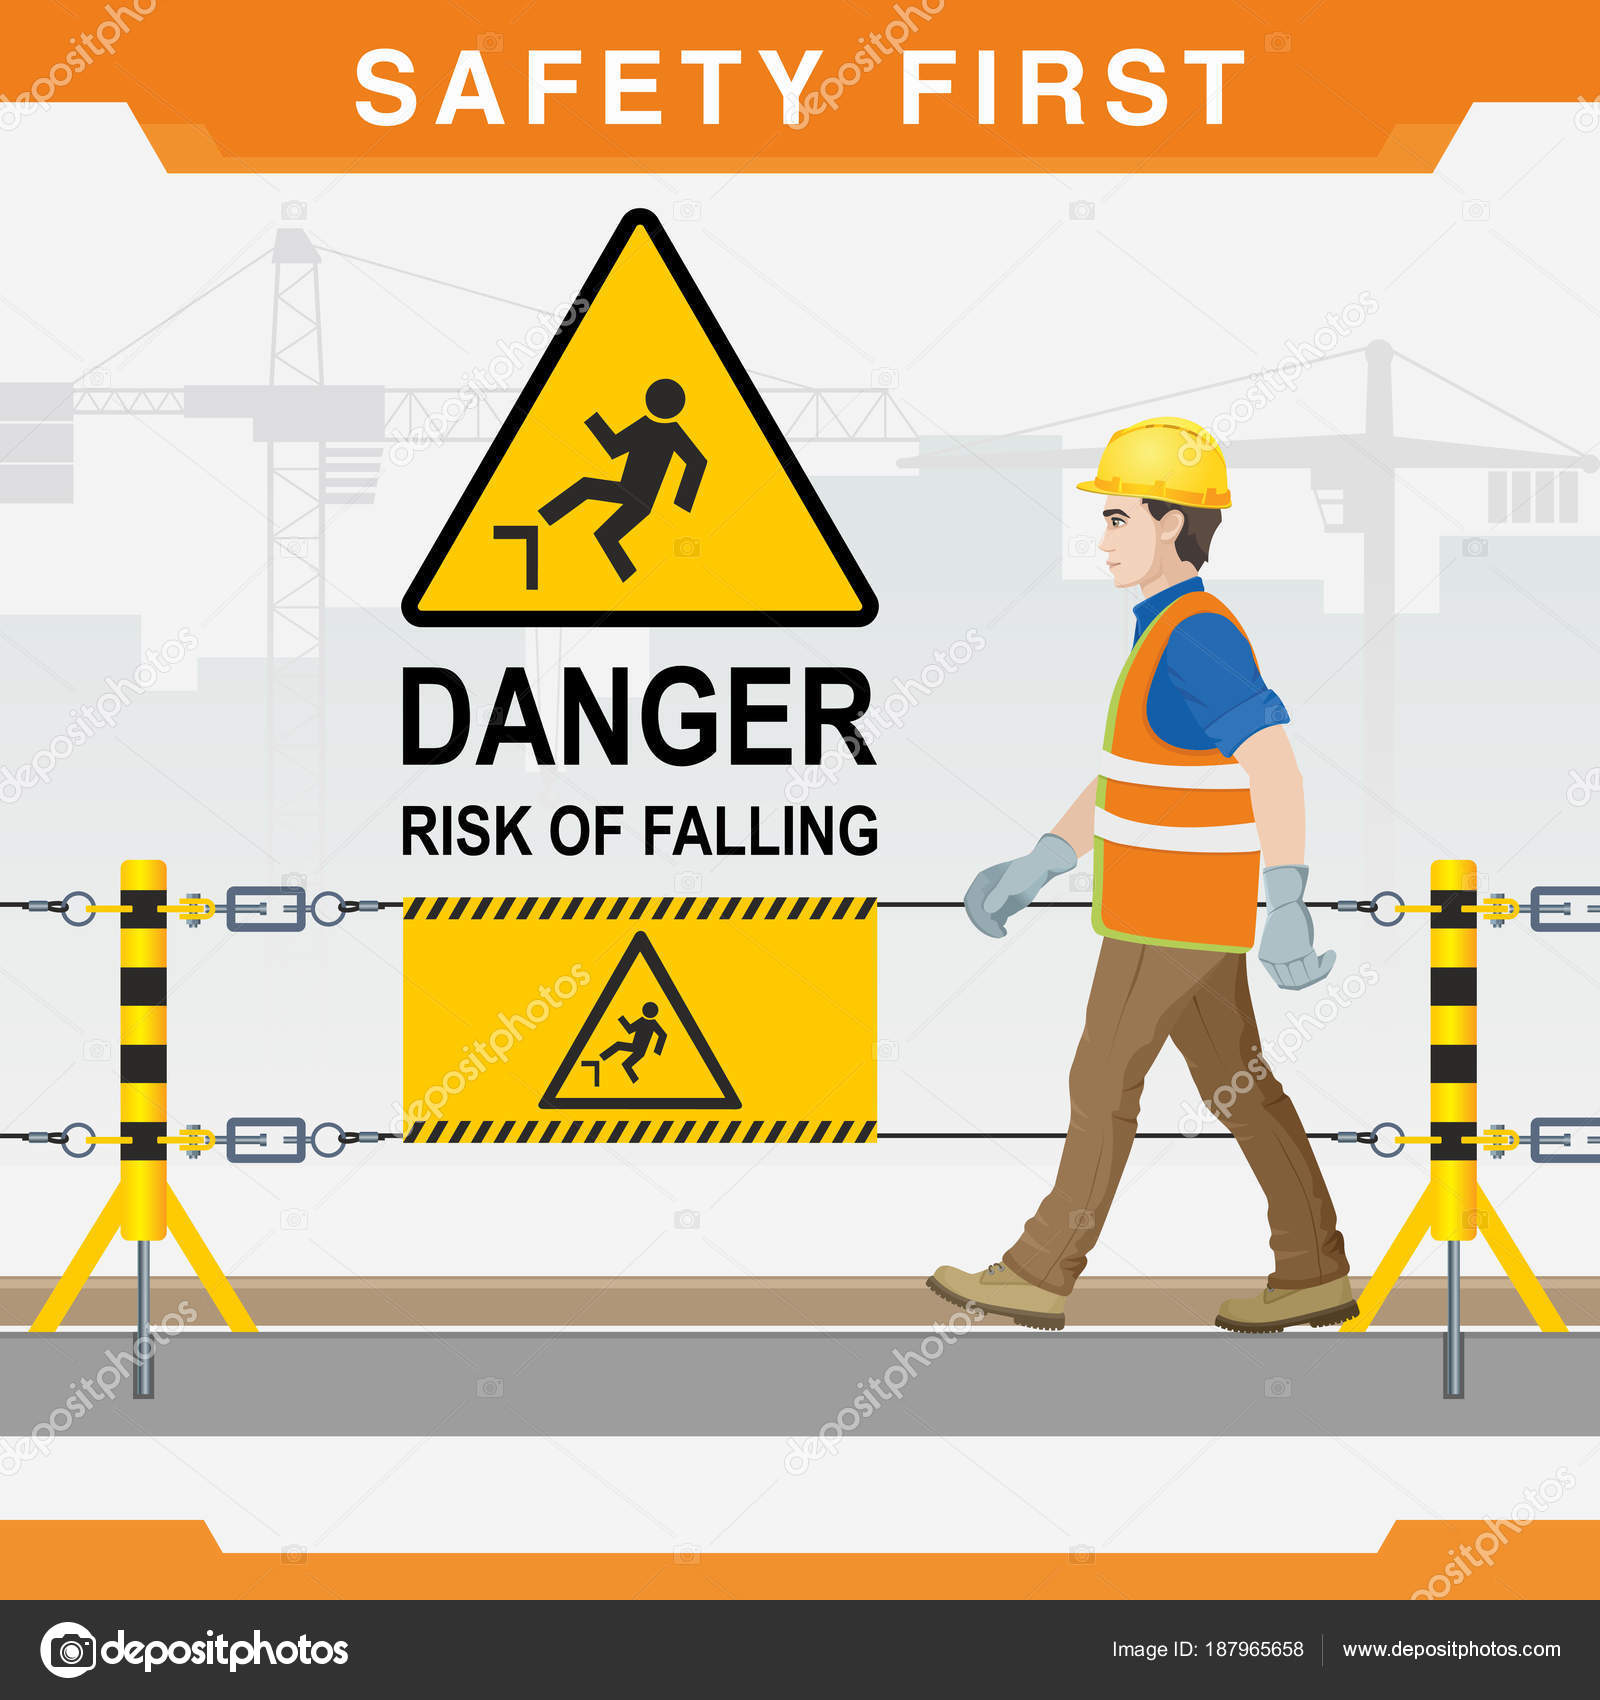 Safety Construction Site Safety First Danger Risk Falling